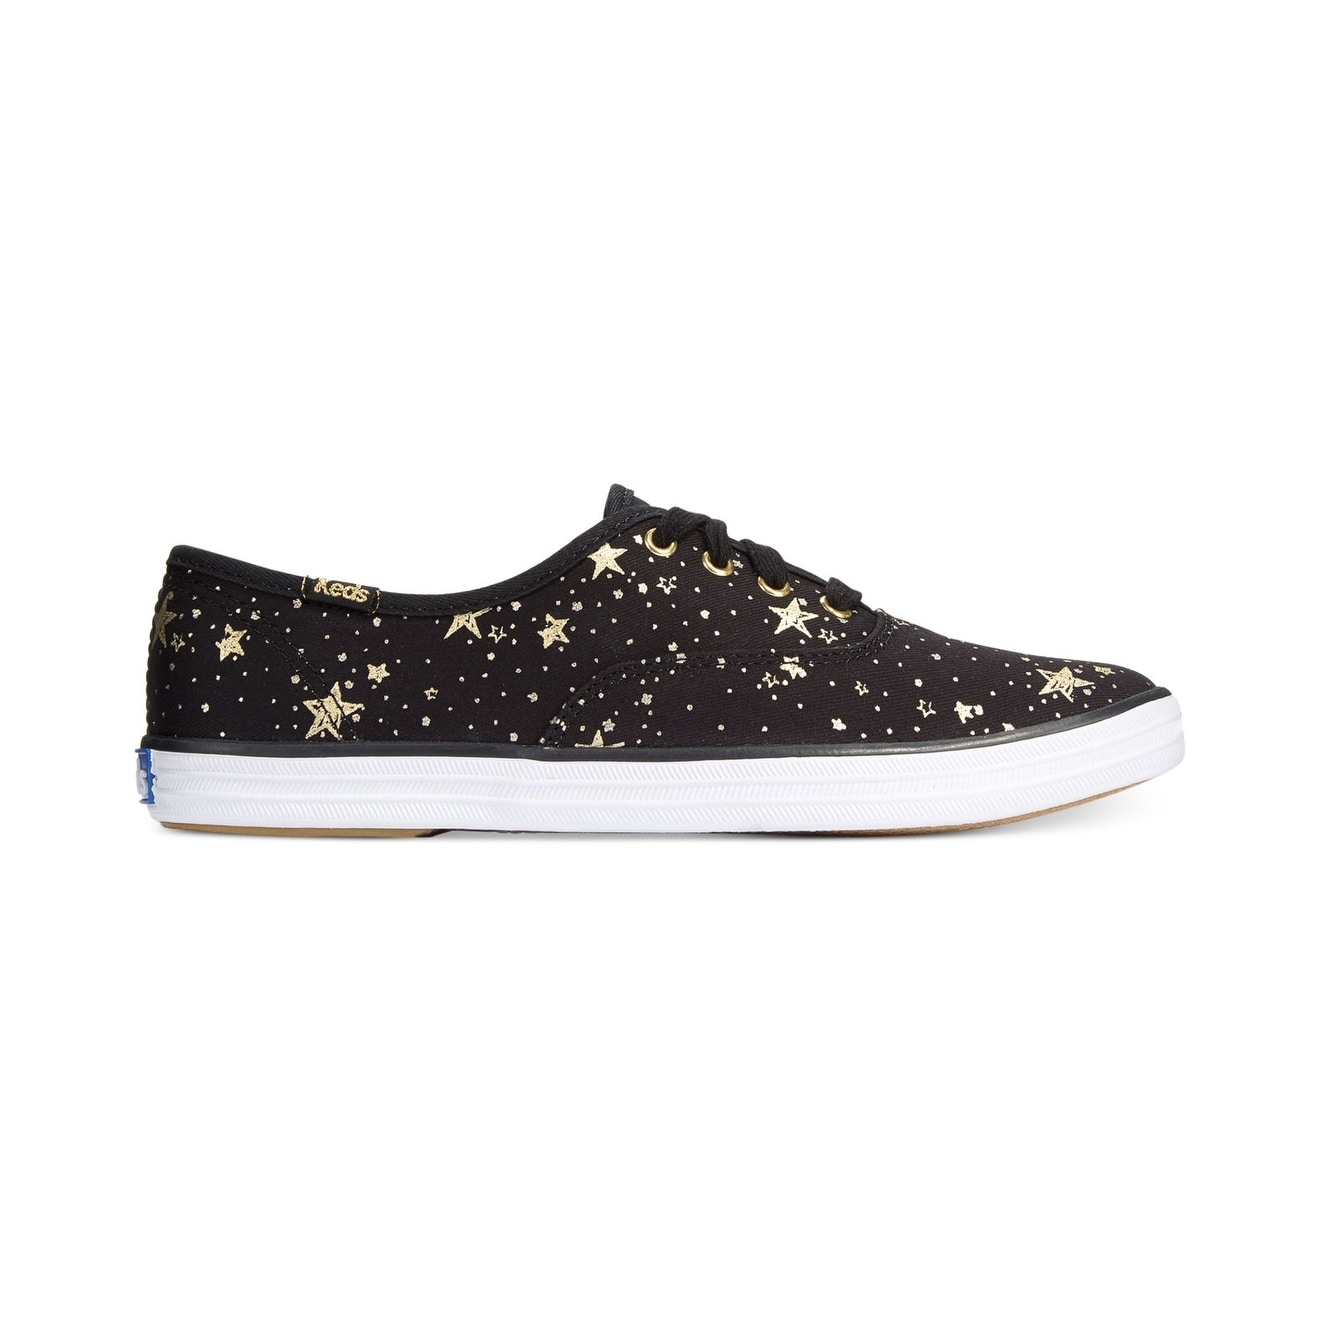 85f5af86cab6f5 Shop Keds Womens Champion Celestial Canvas Low Top Lace Up Fashion Sneakers  - Free Shipping On Orders Over  45 - Overstock - 20895348